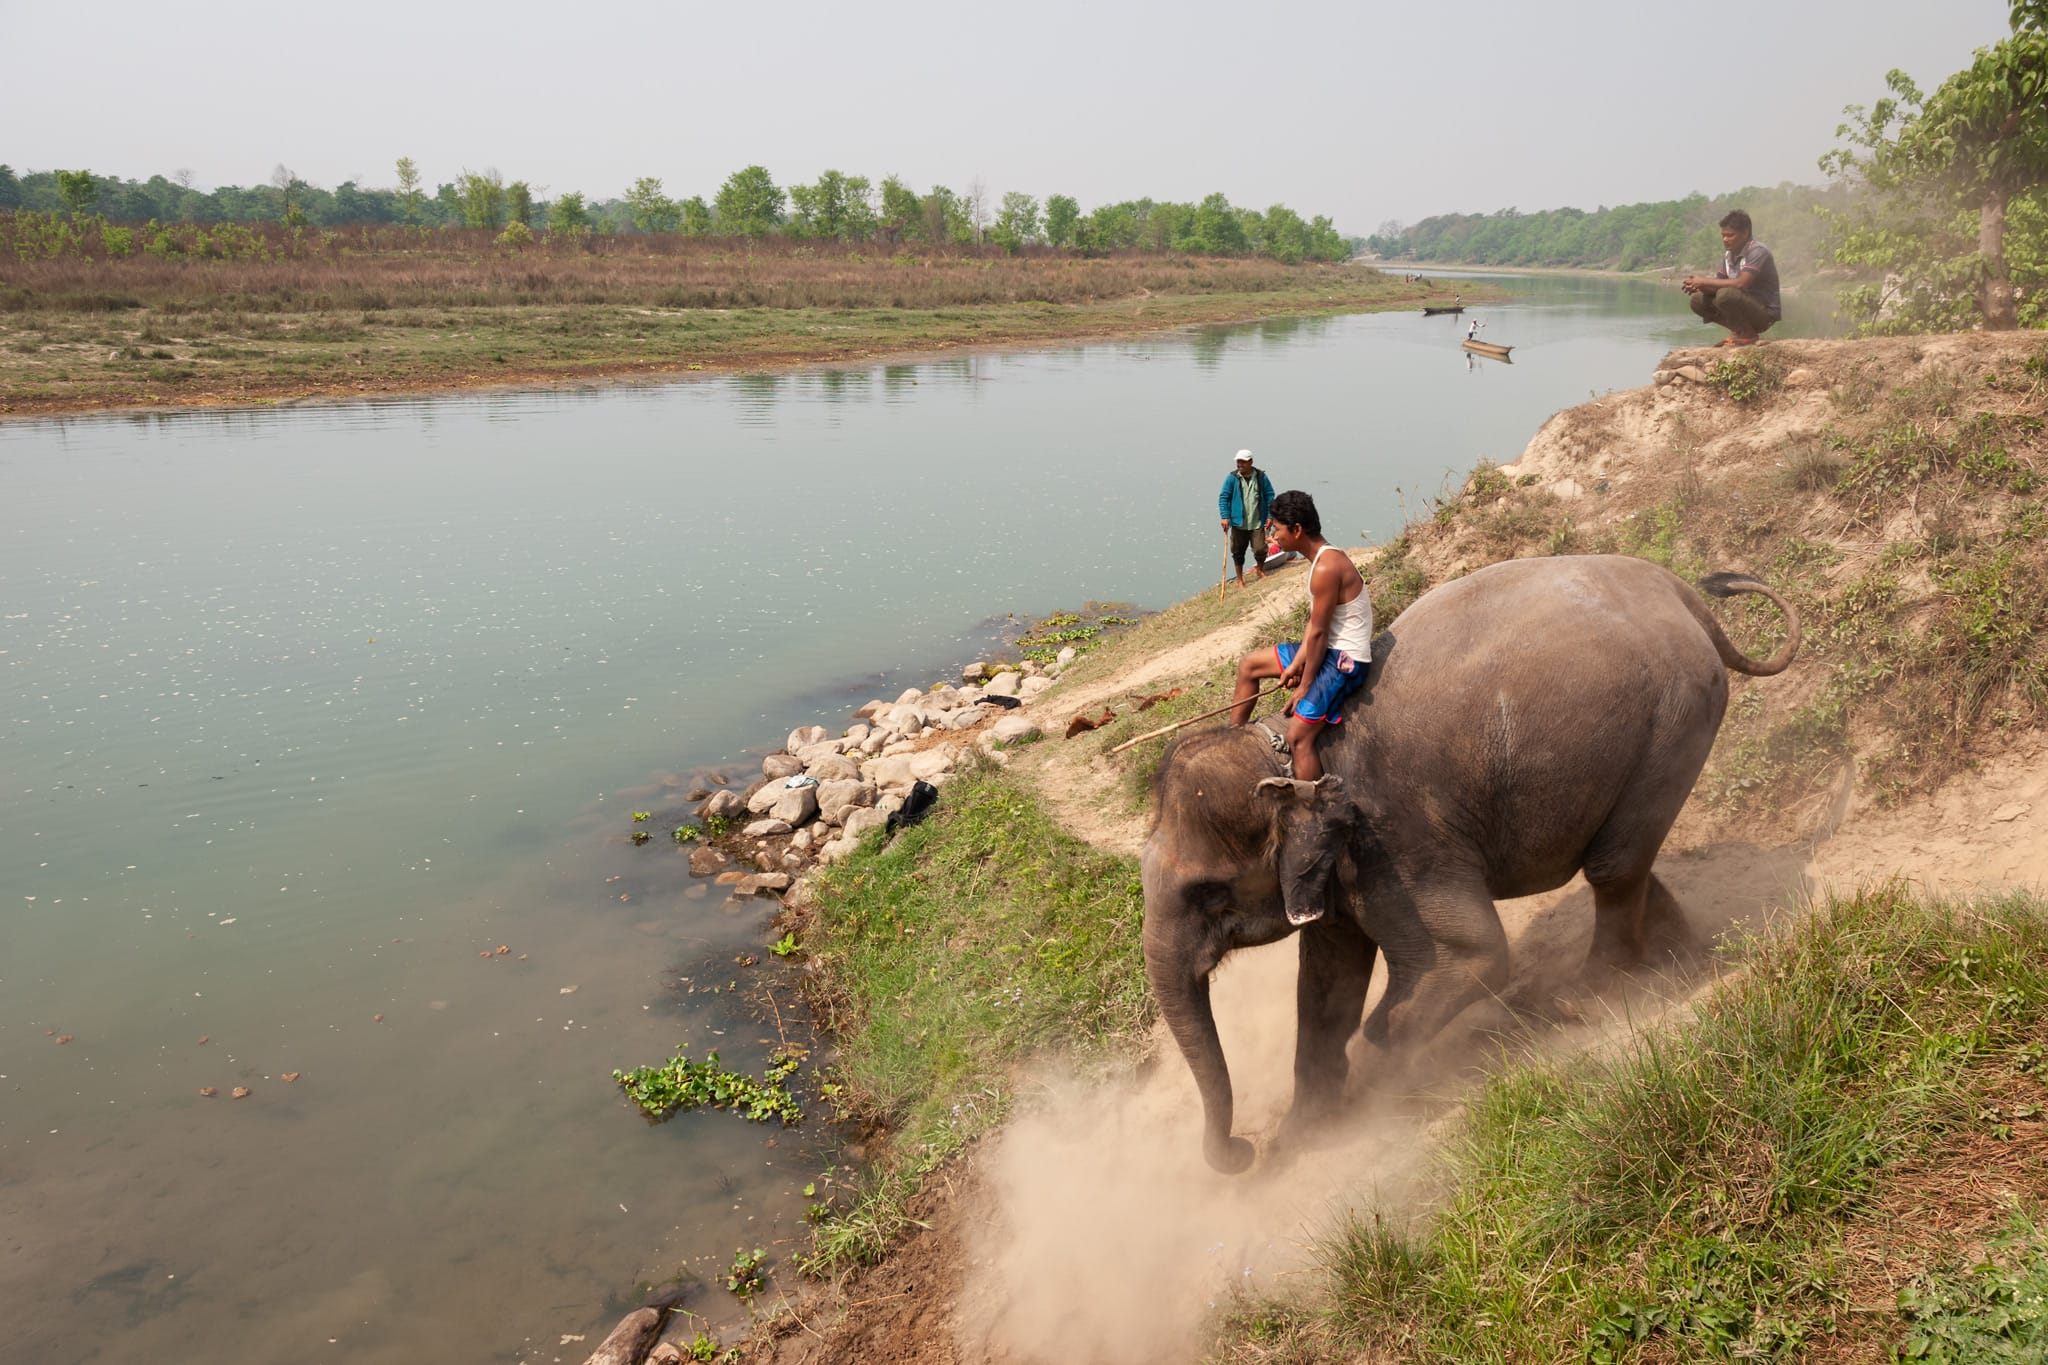 Elephant with its owner goes to bathe in the Narayani River in the Chitwan National Park, Nepal.